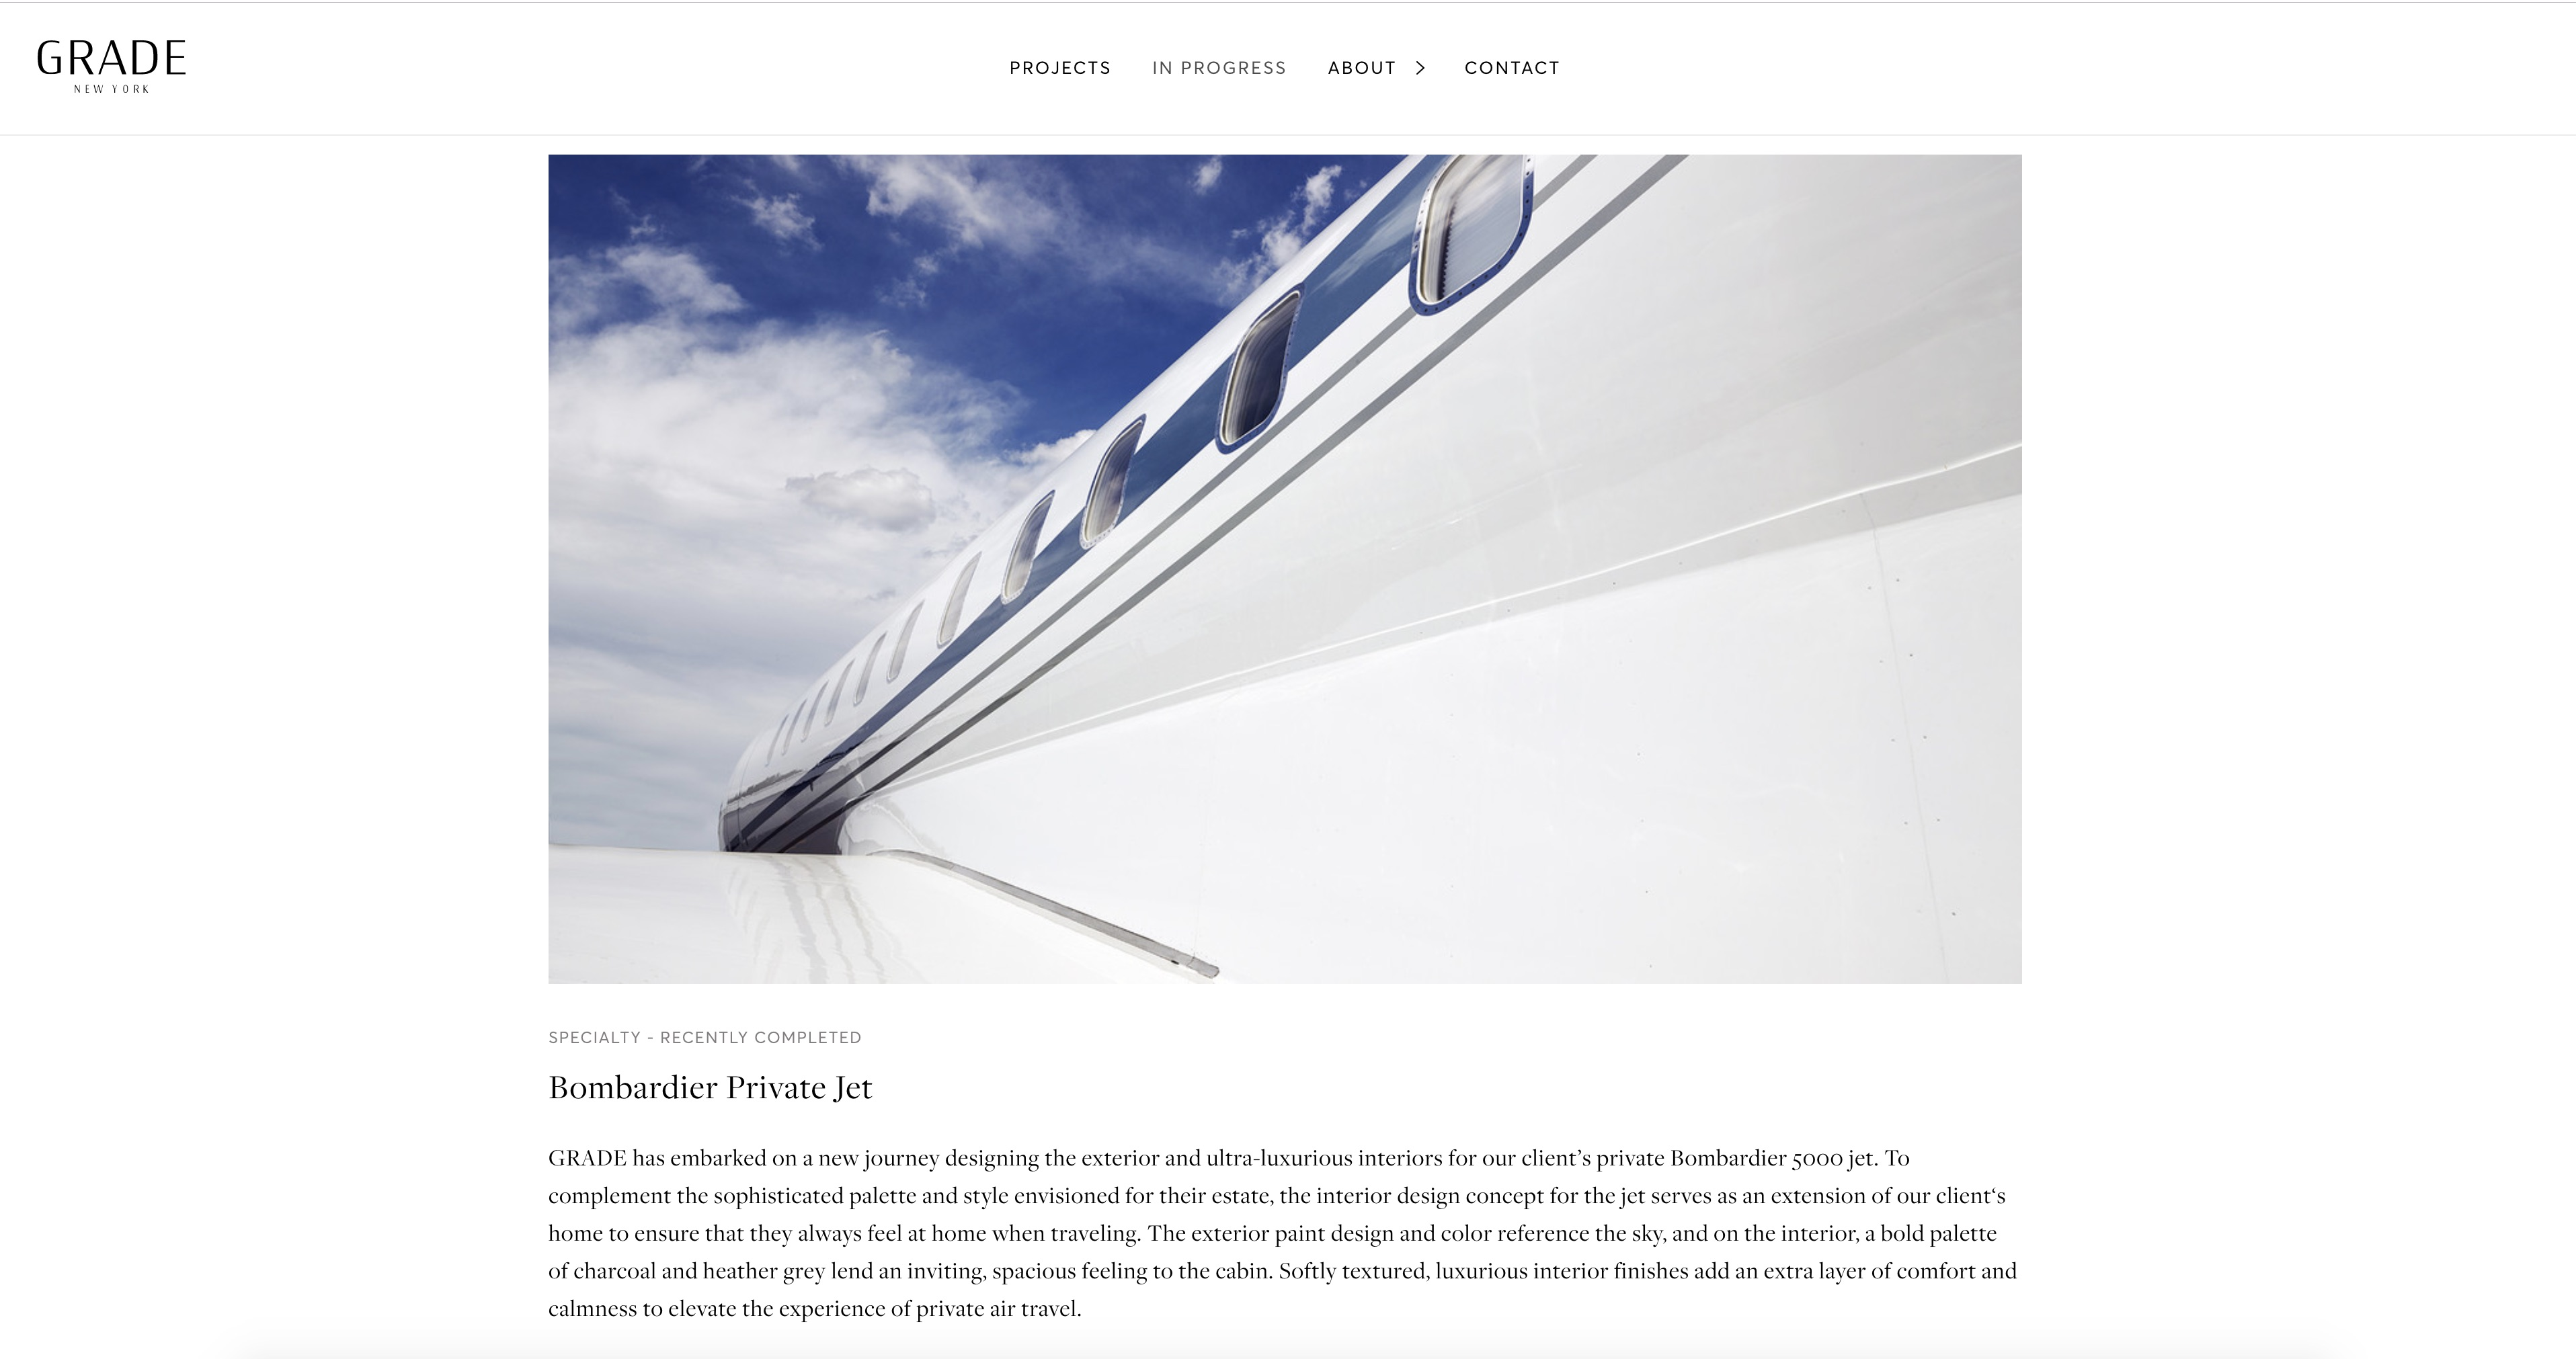 News page of Grade New York's website that was designed and developed by DTE studio.